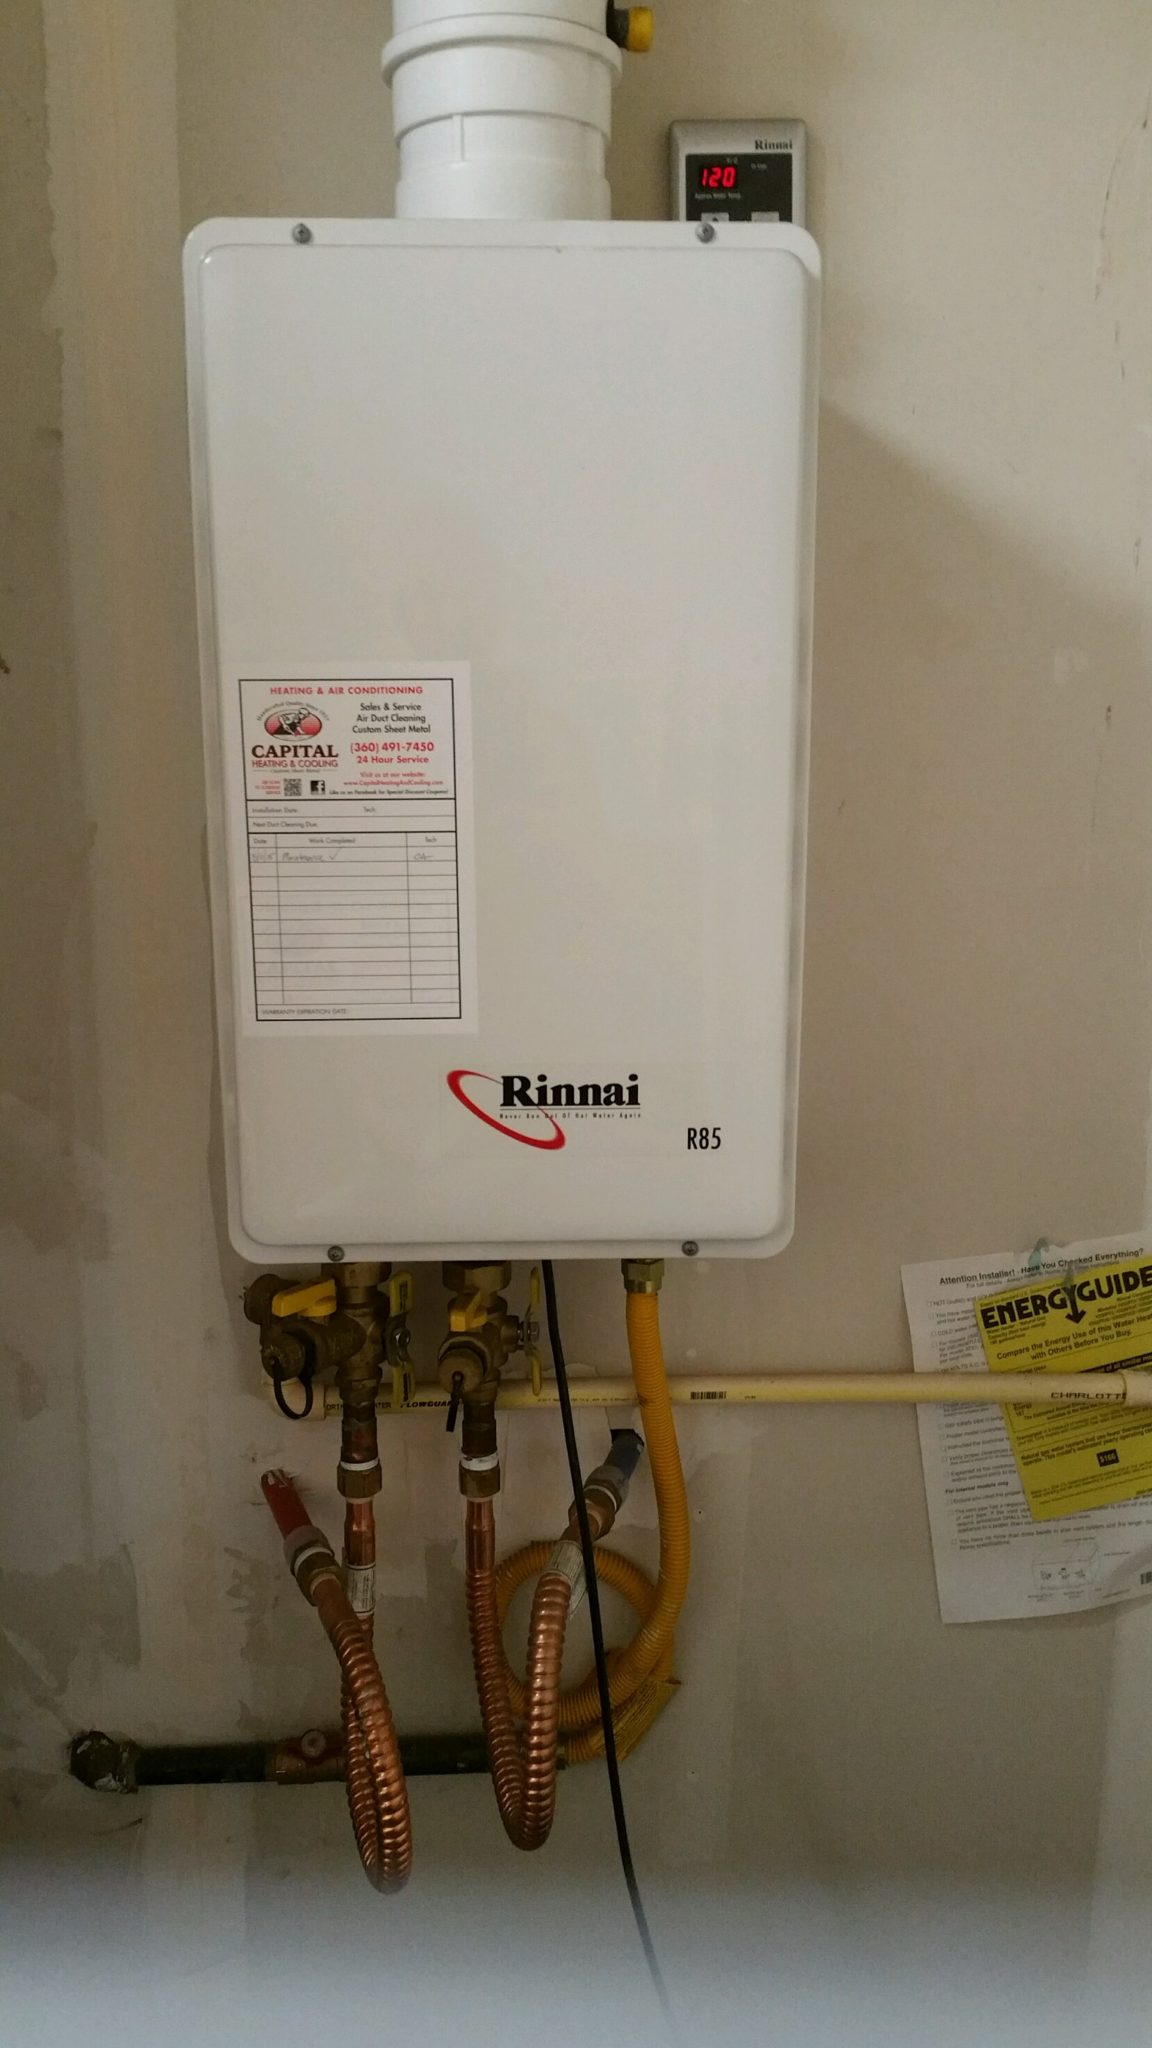 Pros and cons of gas tankless water heaters - Boggs Inspection Service A Tankless Hot Water Heater